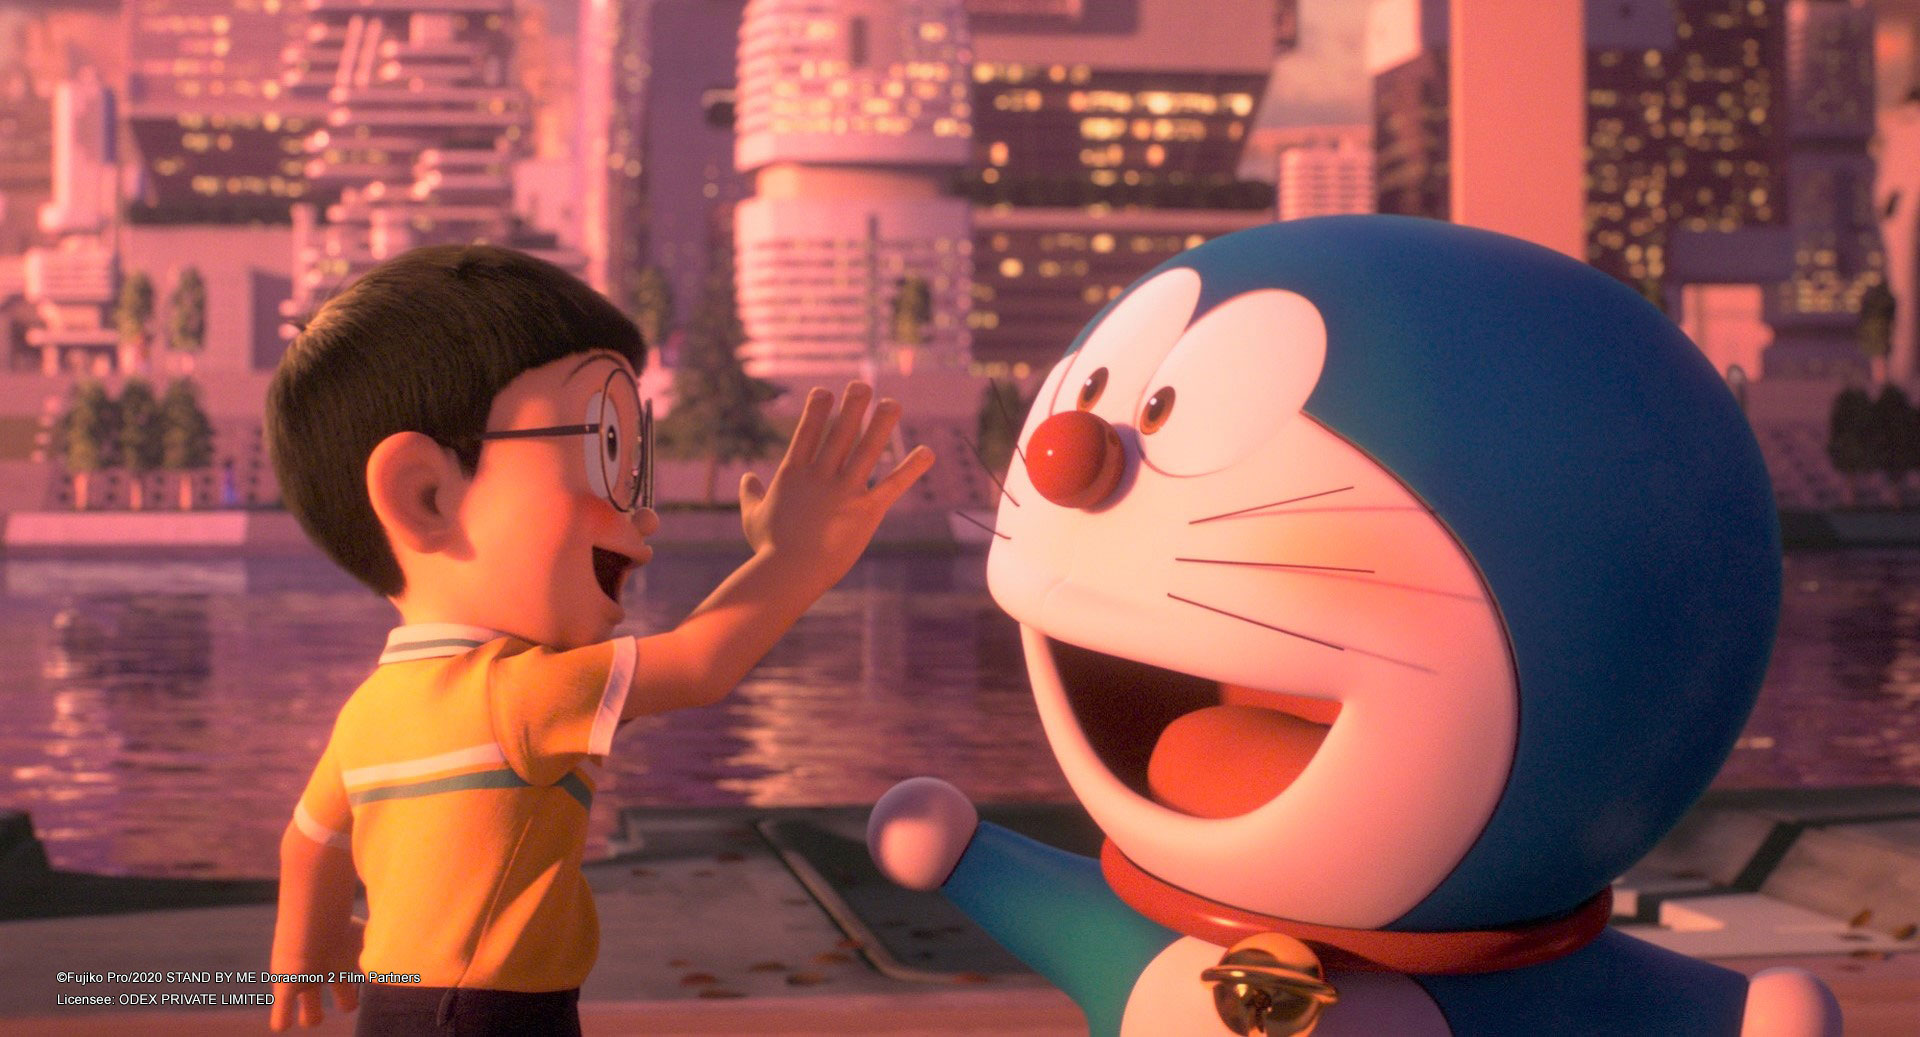 Stand By Me Doraemon 2 Review Nobita Strikes A Chord With The Vulnerable Child Inside All Of Us